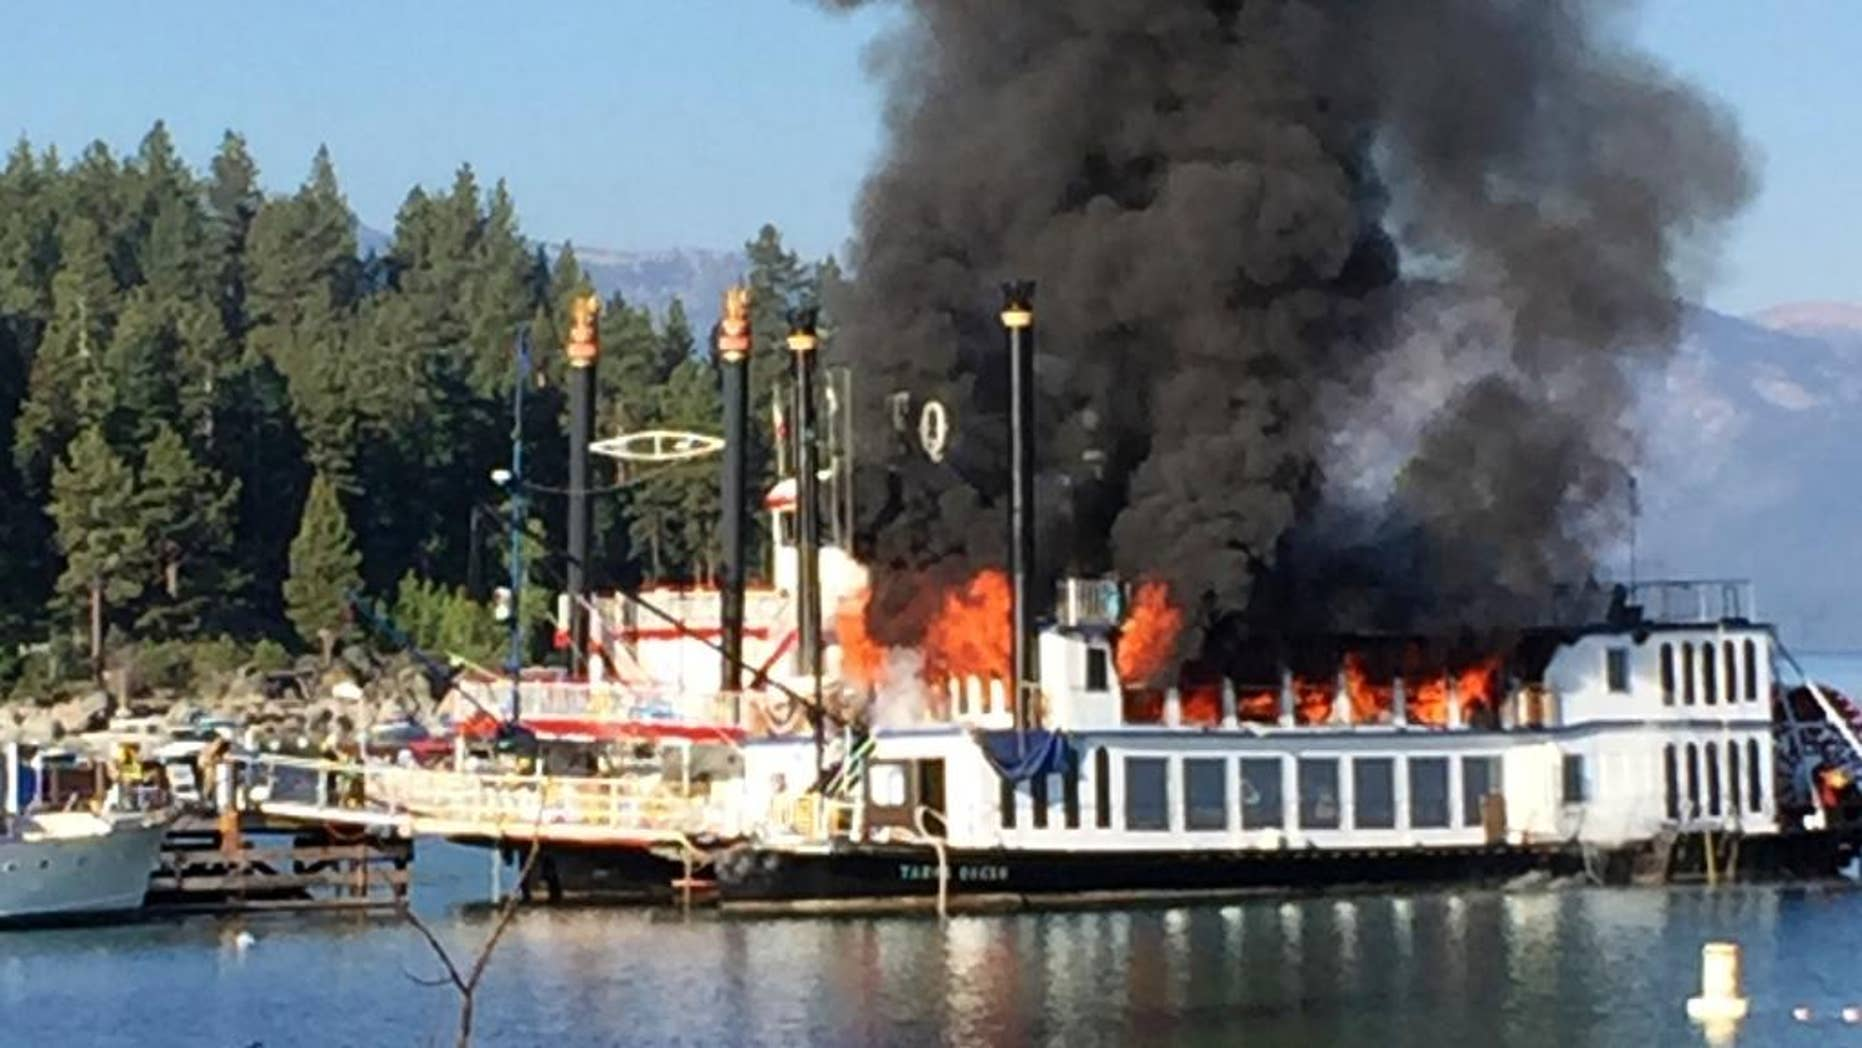 A fire rips through the second deck of a docked tourist cruise boat under repair at Lake Tahoe, in Reno, Nev., Tuesday, Aug. 16, 2016. The fire severely damaged the popular paddle wheeler and injuring two workers on board before crews extinguished the flames that sent a plume of black smoke high above the Sierra waters. (Zach Hastie via AP)